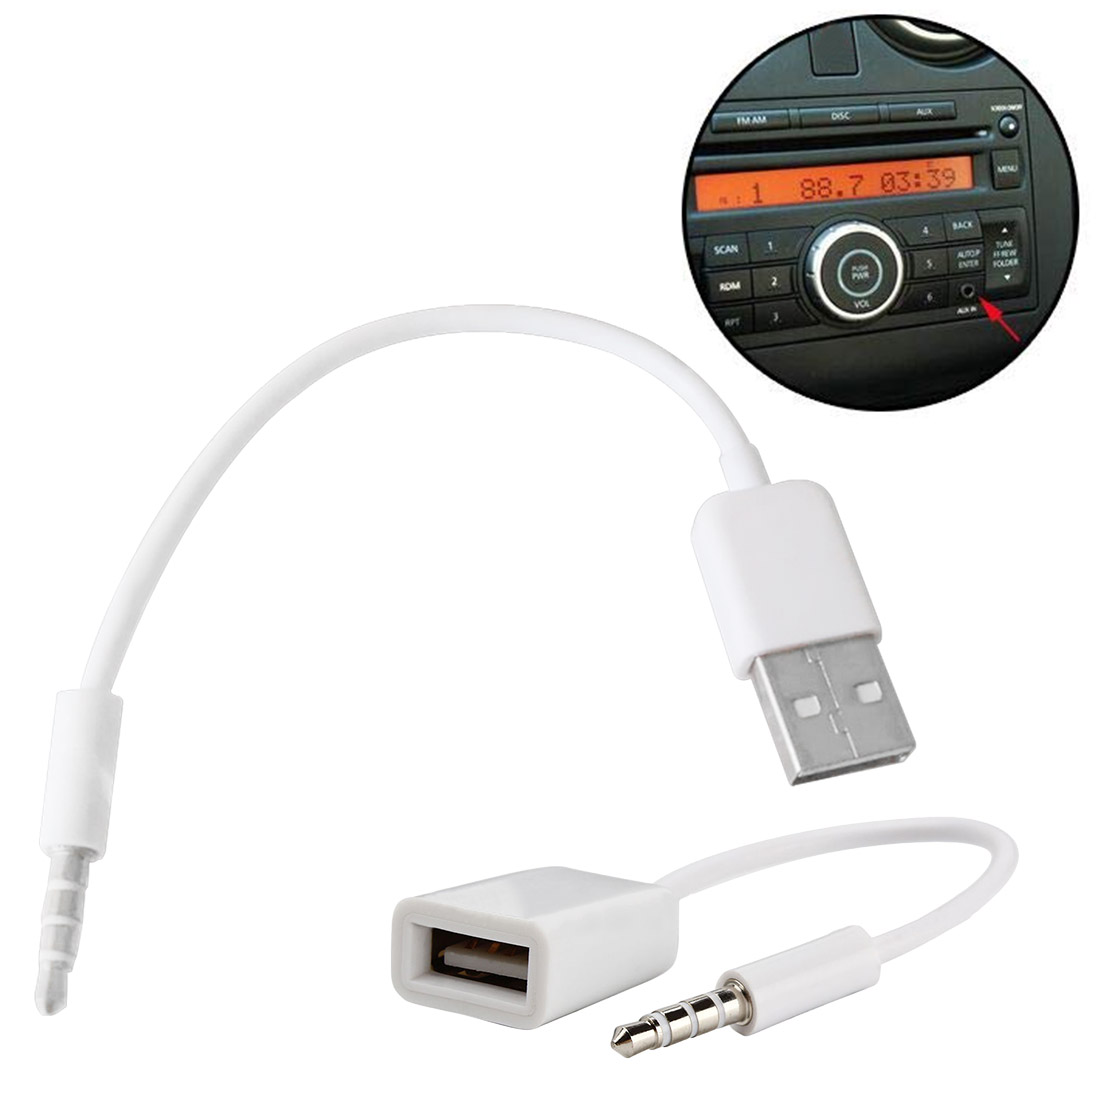 3.5mm Male Audio Plug Jack To USB 2.0 Female Converter Cable Headphone Cable  Adapter Charger Cables Hot For Car MP3